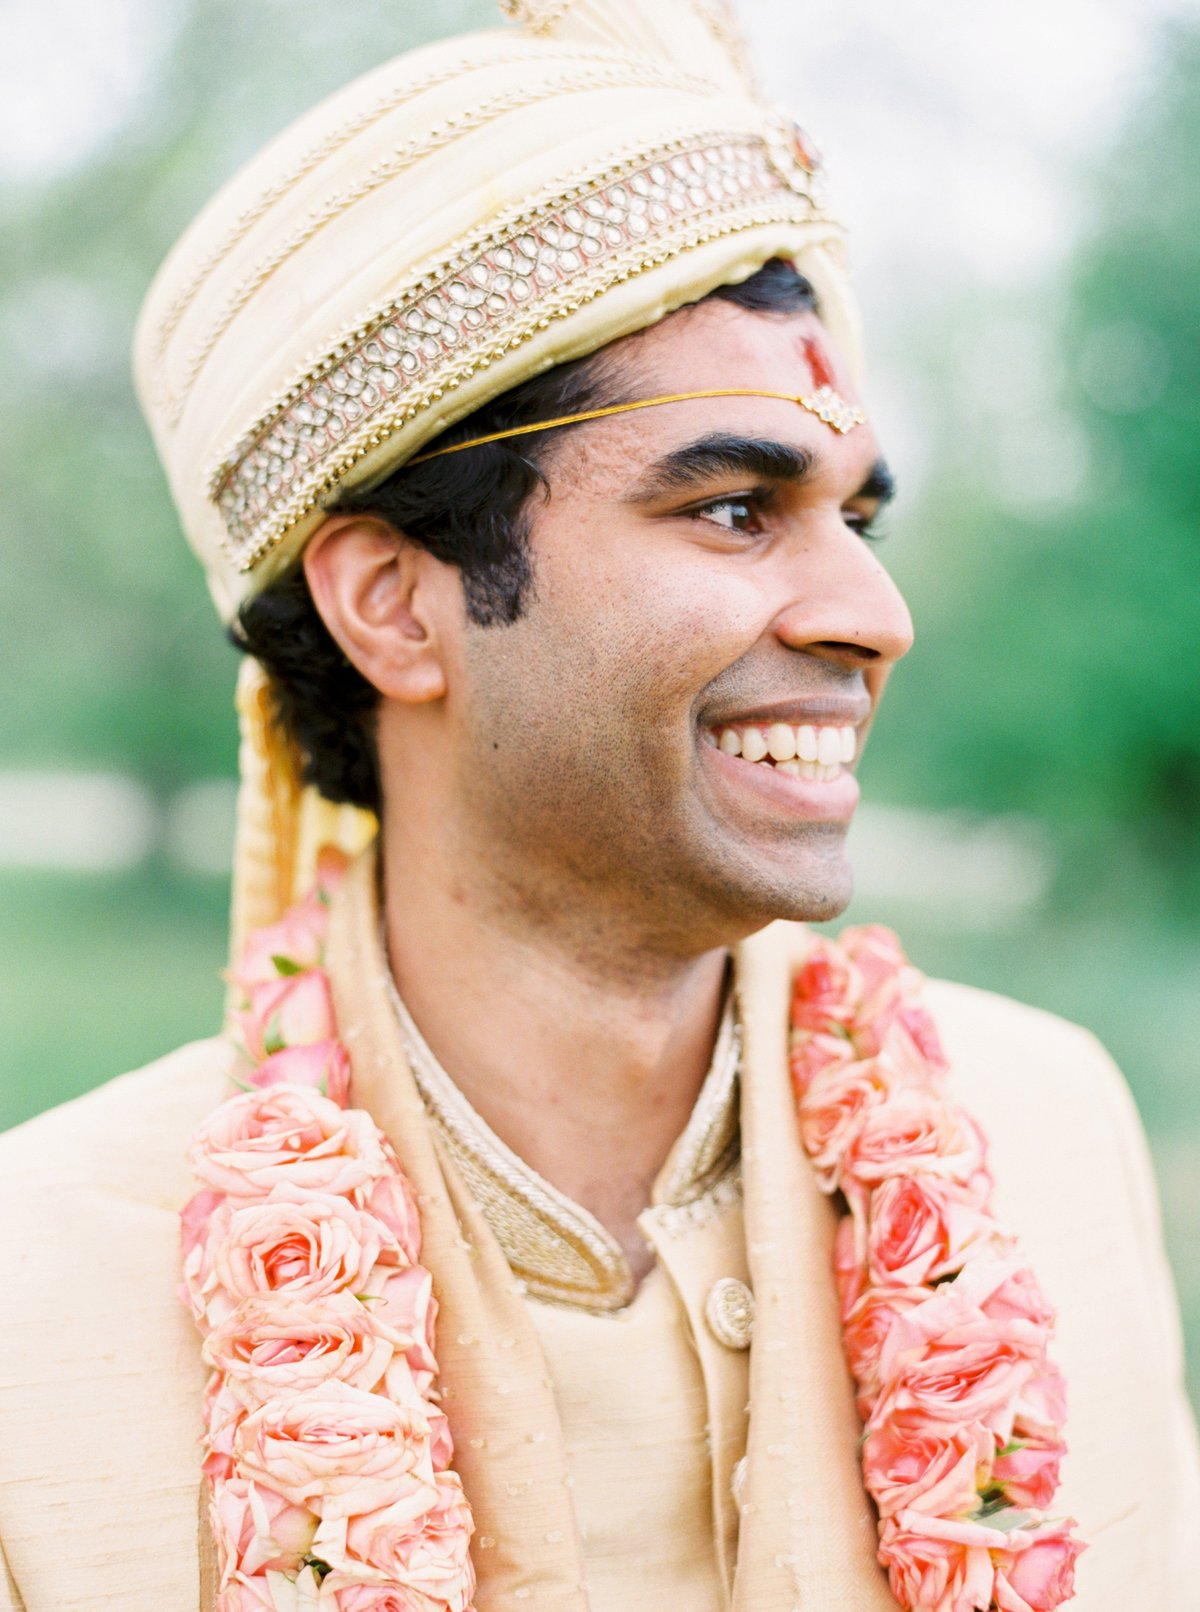 nicoleclareyphotography_hannah+akash_cincinnati_wedding_0050